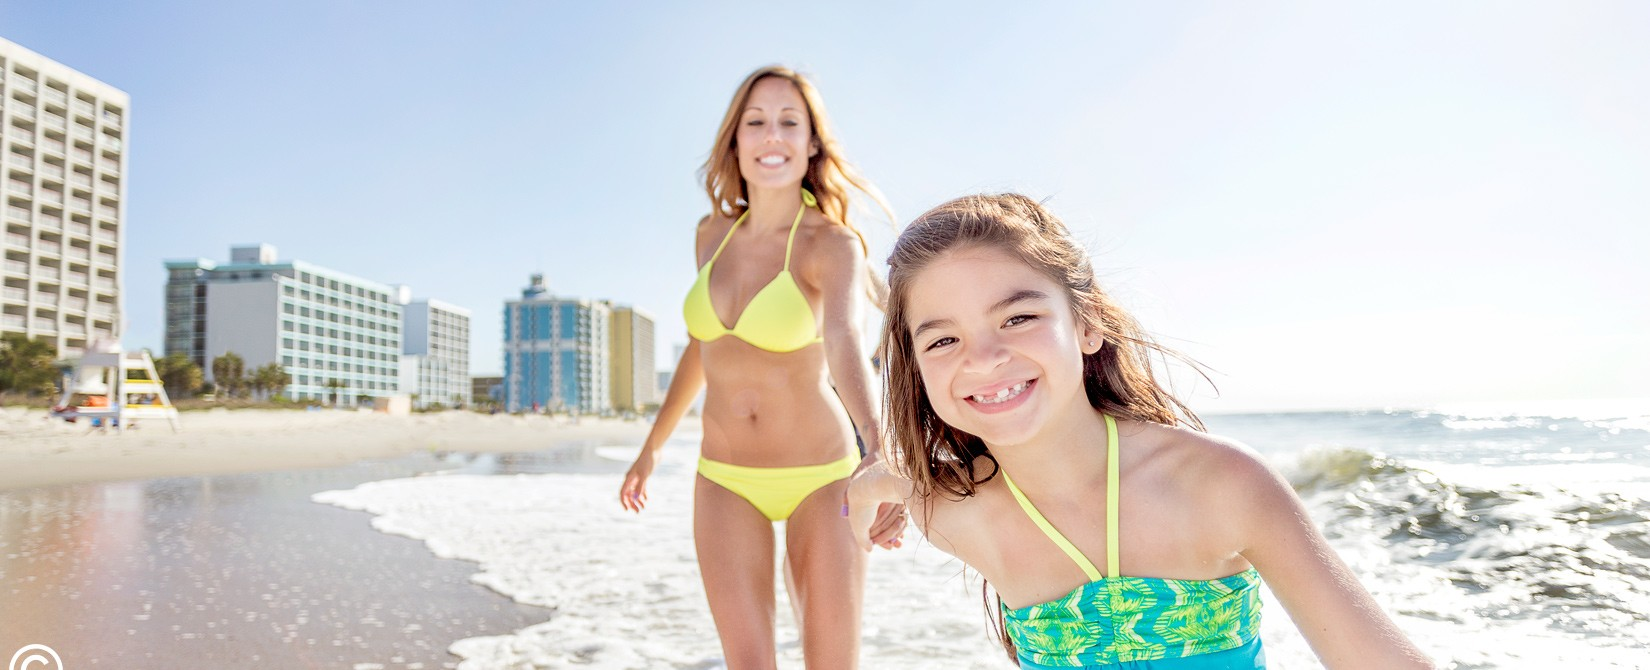 Mother and daughter on the beach in Myrtle Beach.